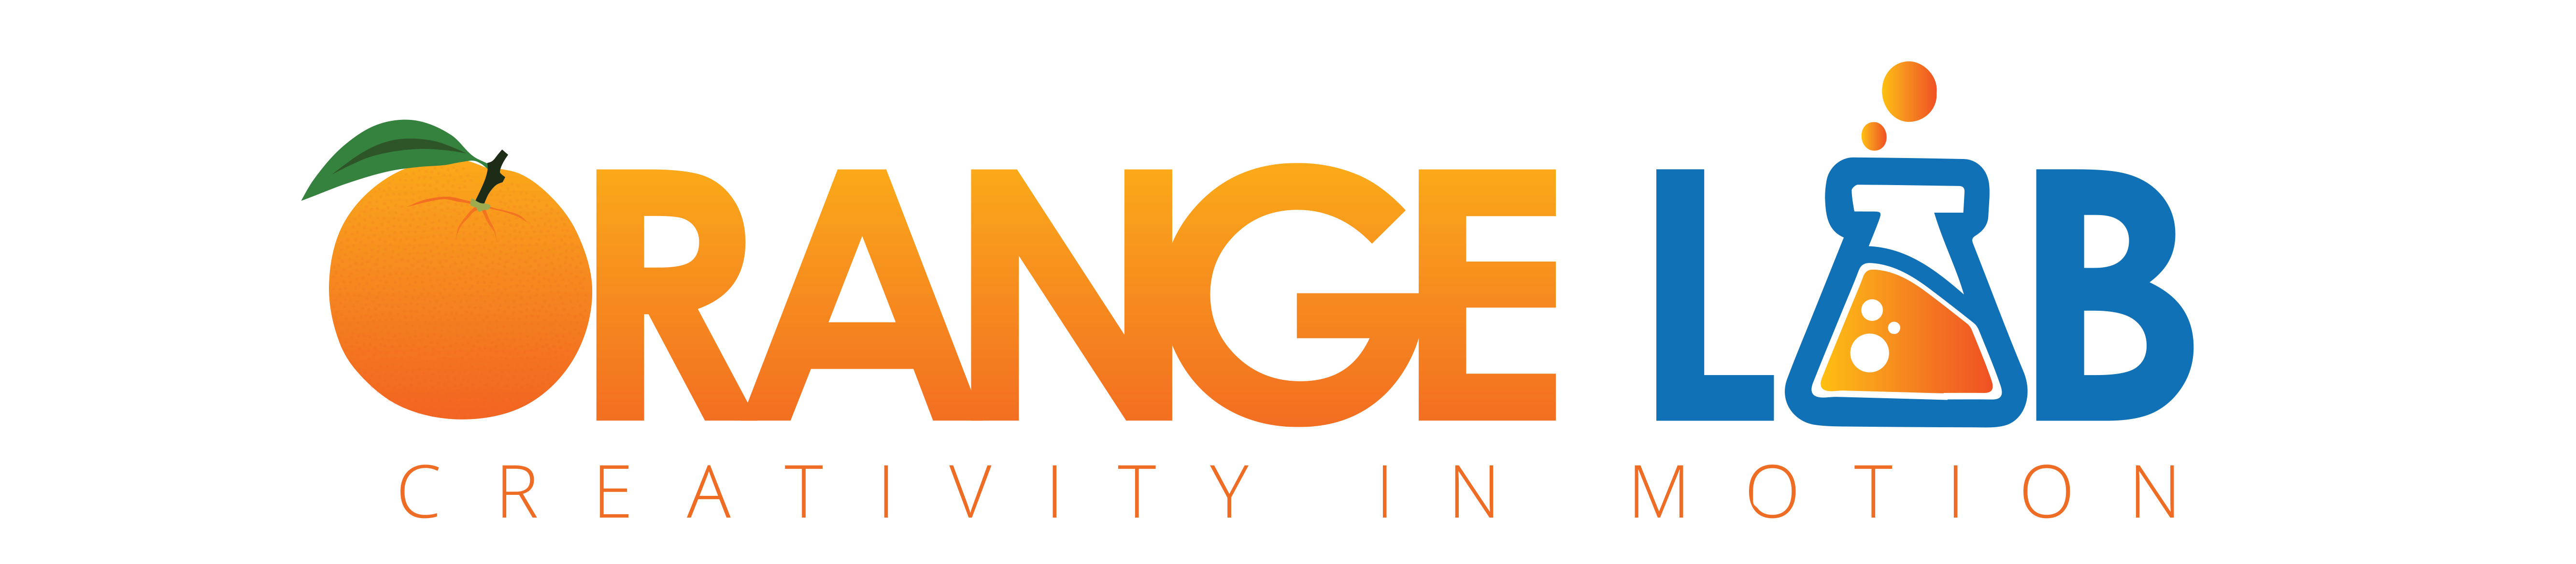 Orange Lab Promo's Logo